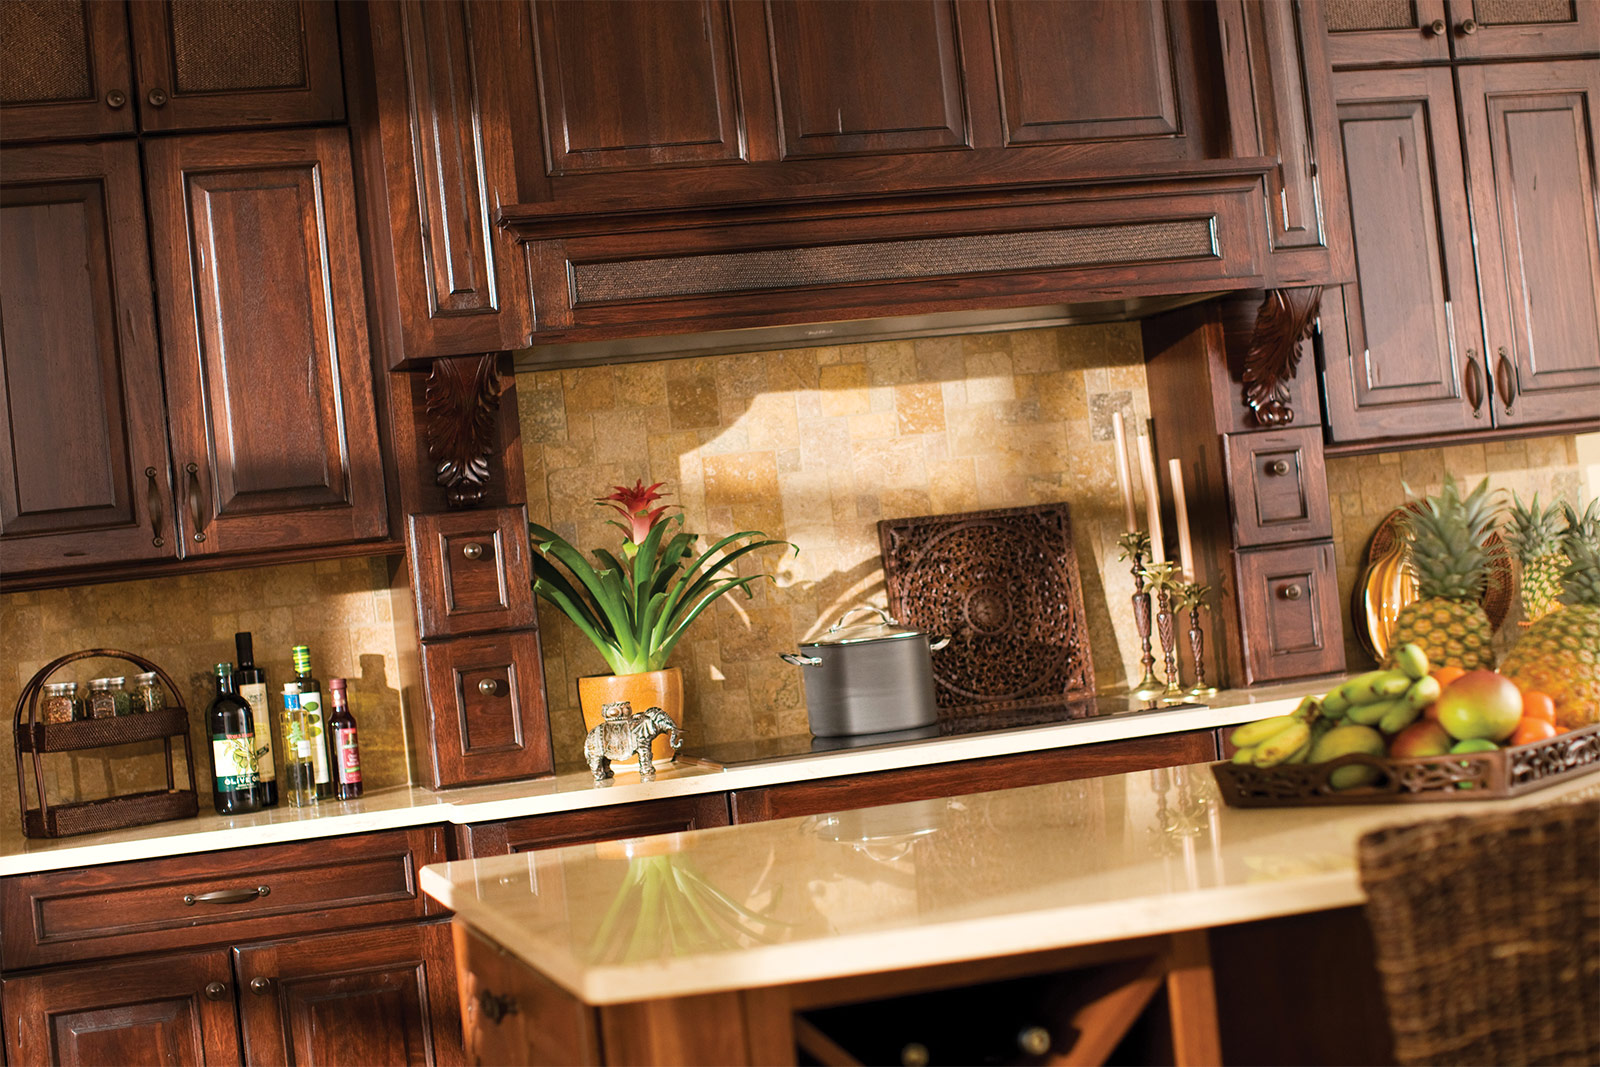 New orleans custom kitchen ideas top 5 items to consider for Kitchen cabinets new orleans